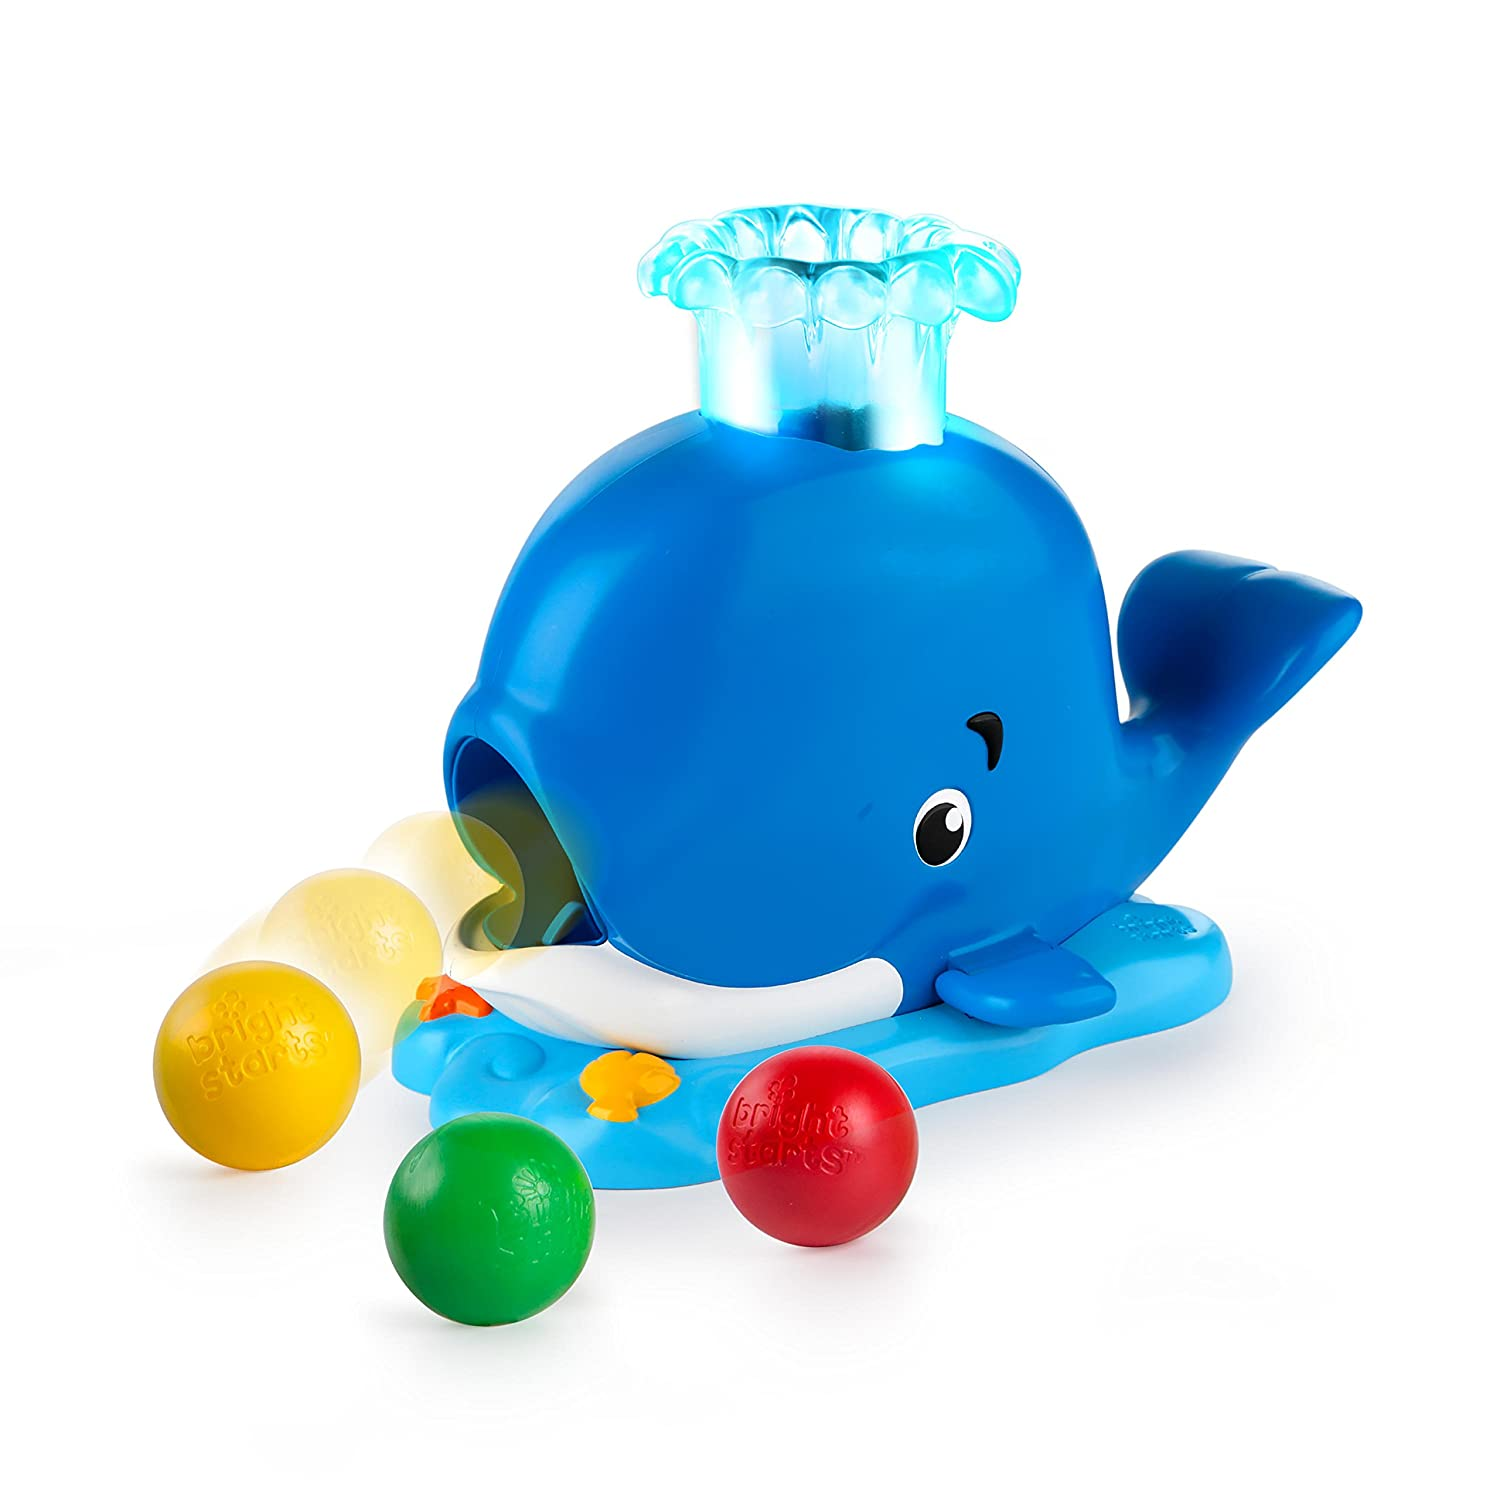 Bright Starts Silly Spout Whale Popper: Amazon.co.uk: Baby